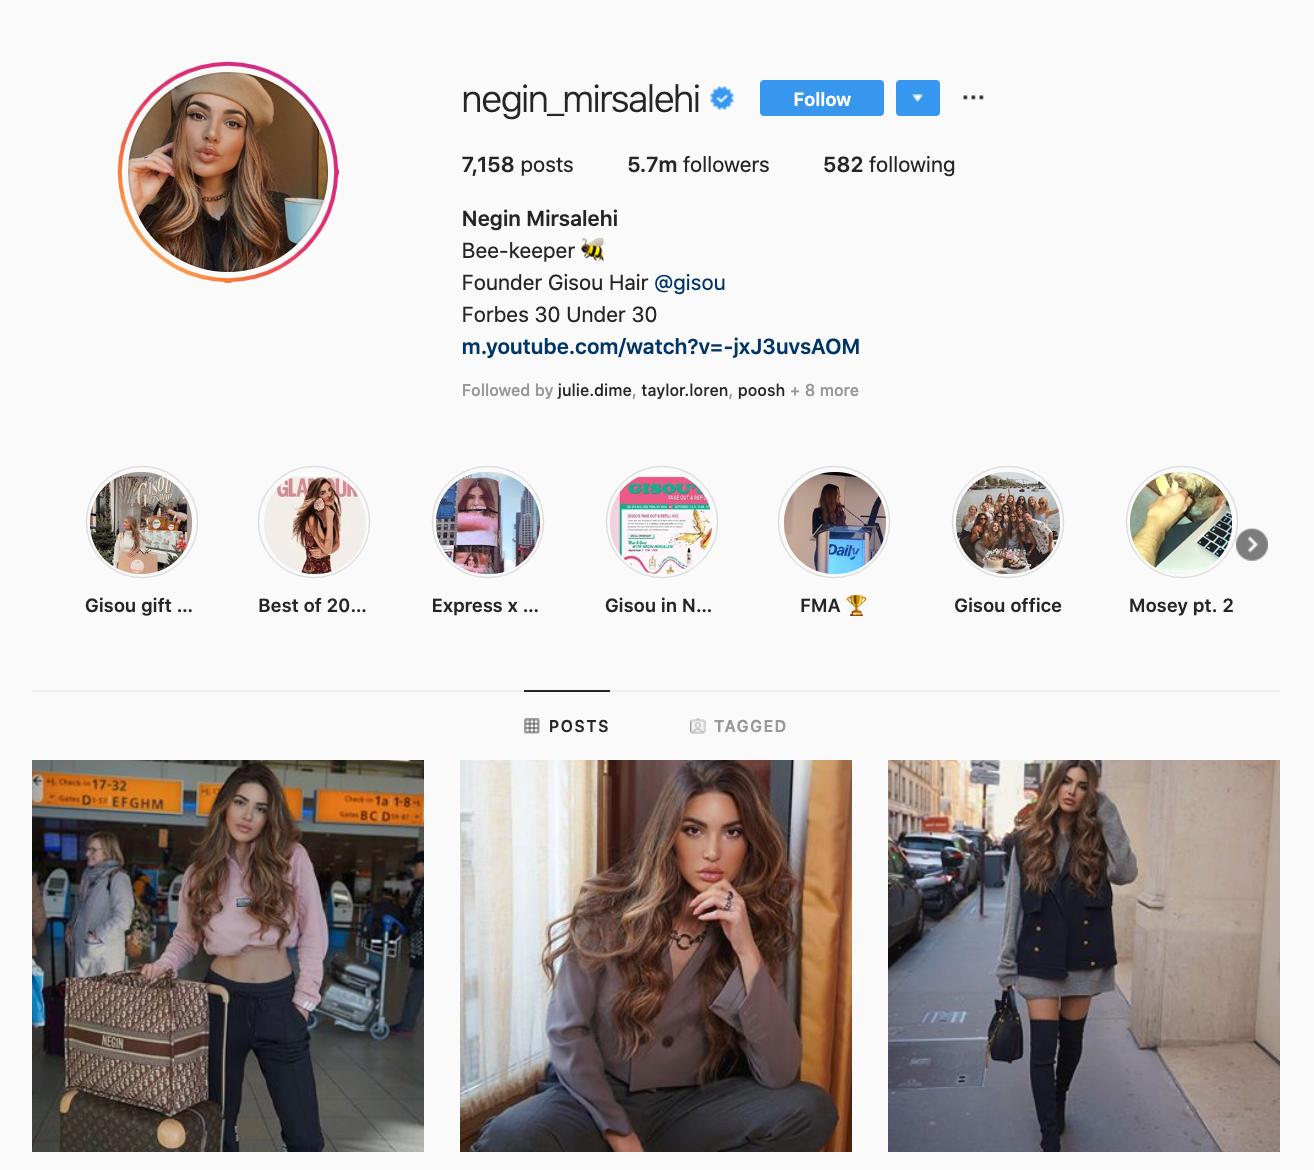 Mega influencers on Instagram